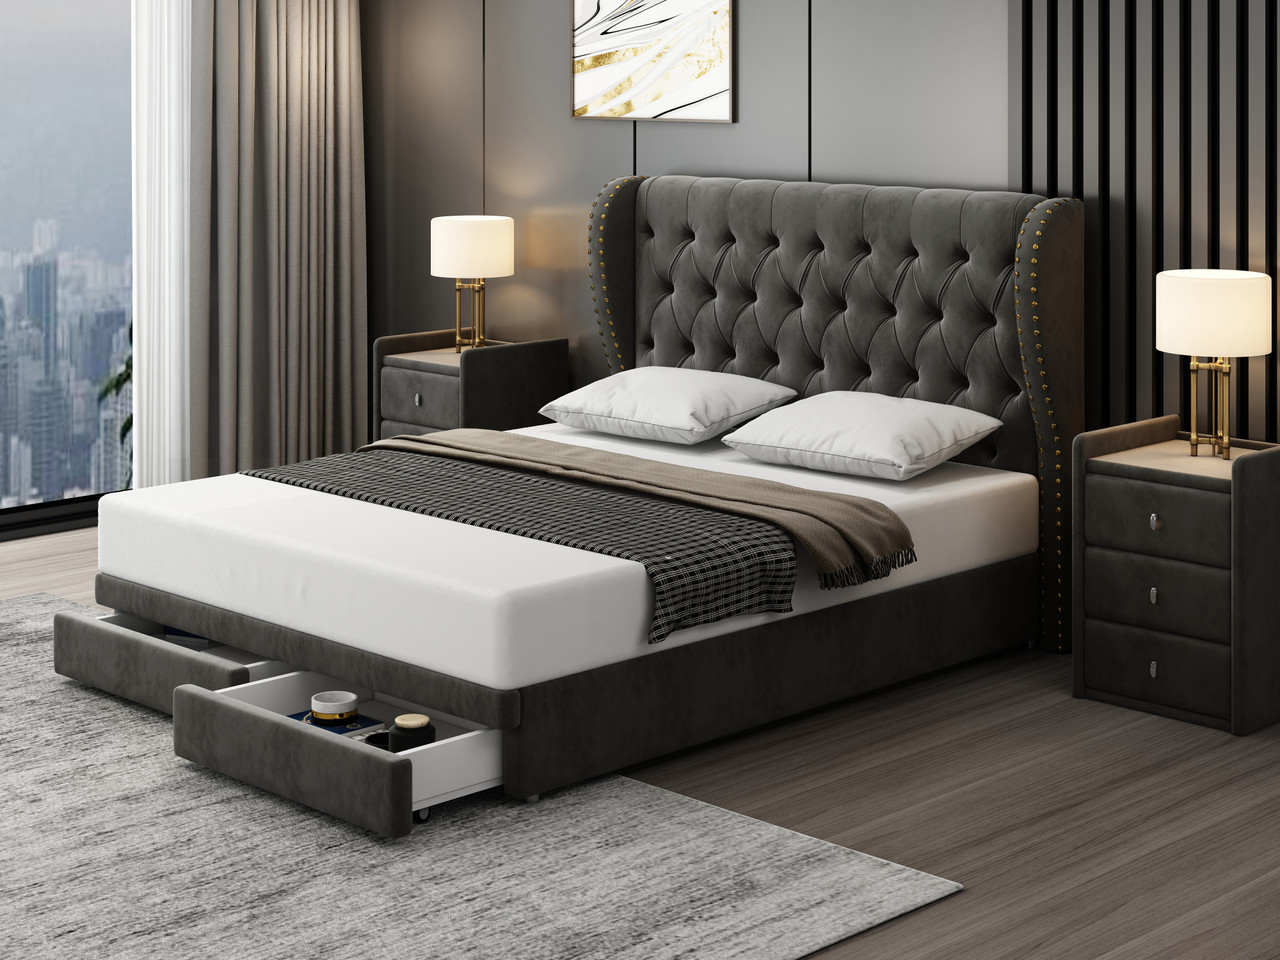 Why You Should Buy a Bed with Storage